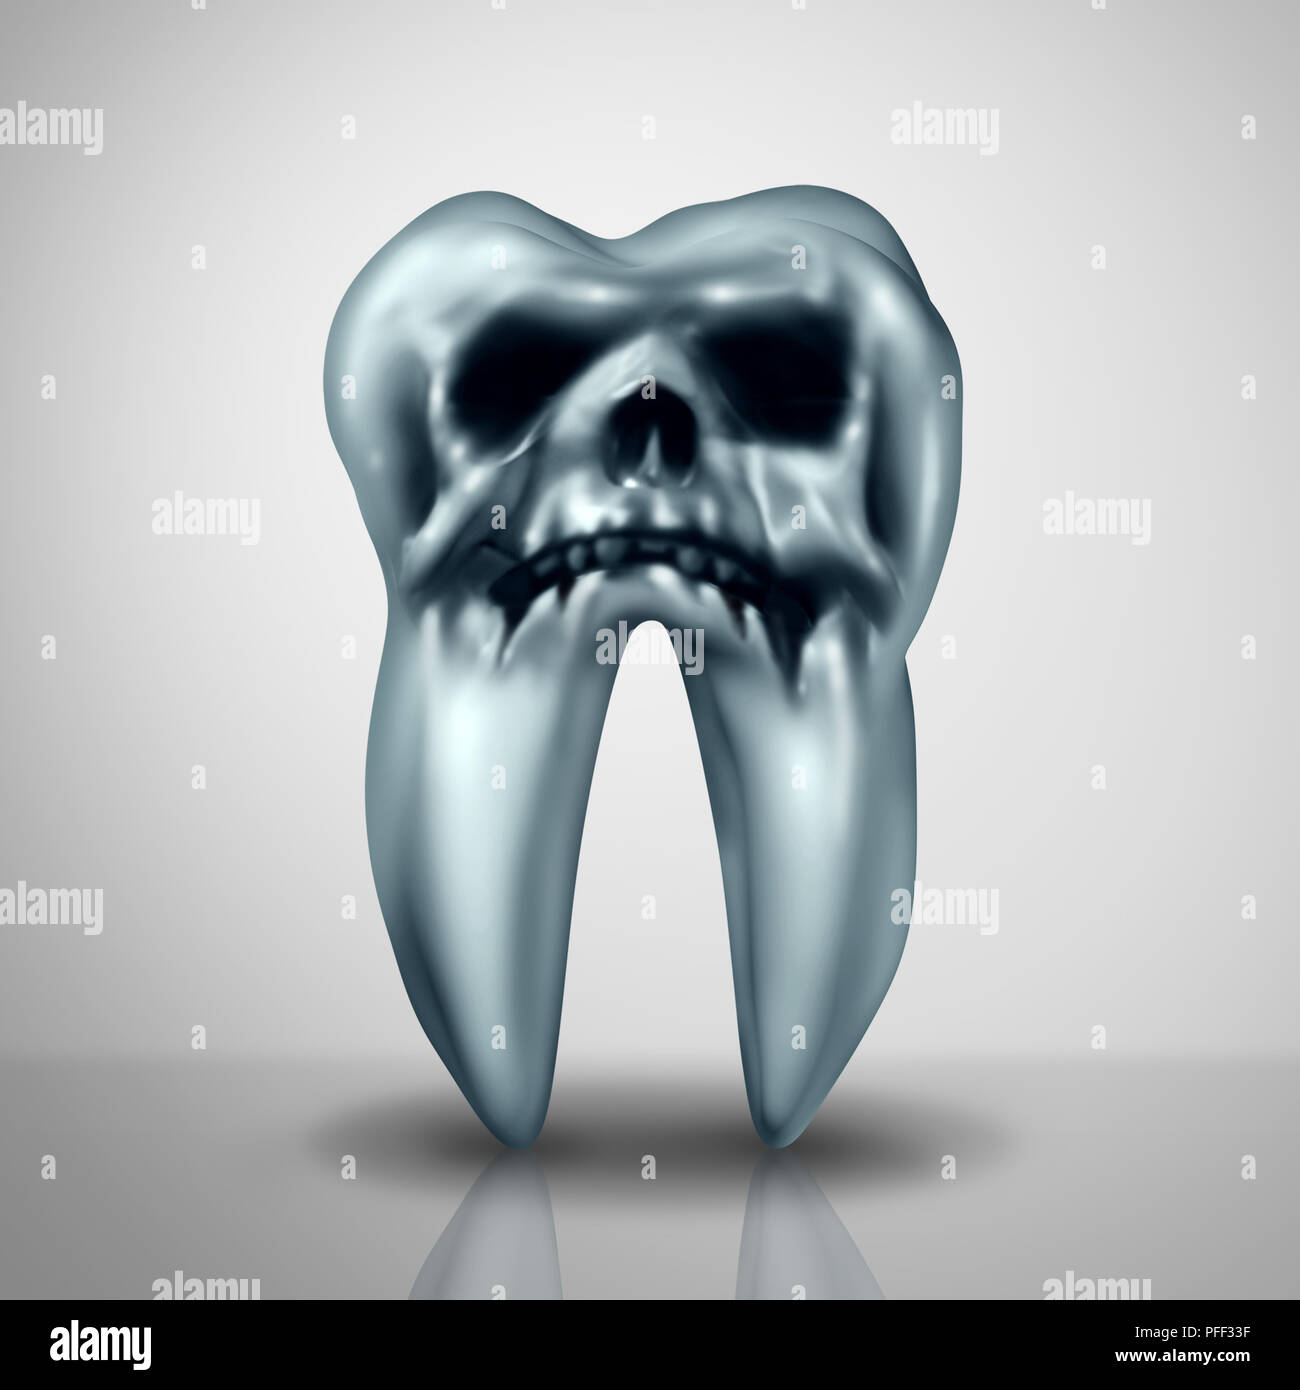 Tooth decay disease danger as a cavity or cavities symbol showing the risk of tooth anatomy in decay due to bacteria and acids as a death skull. - Stock Image